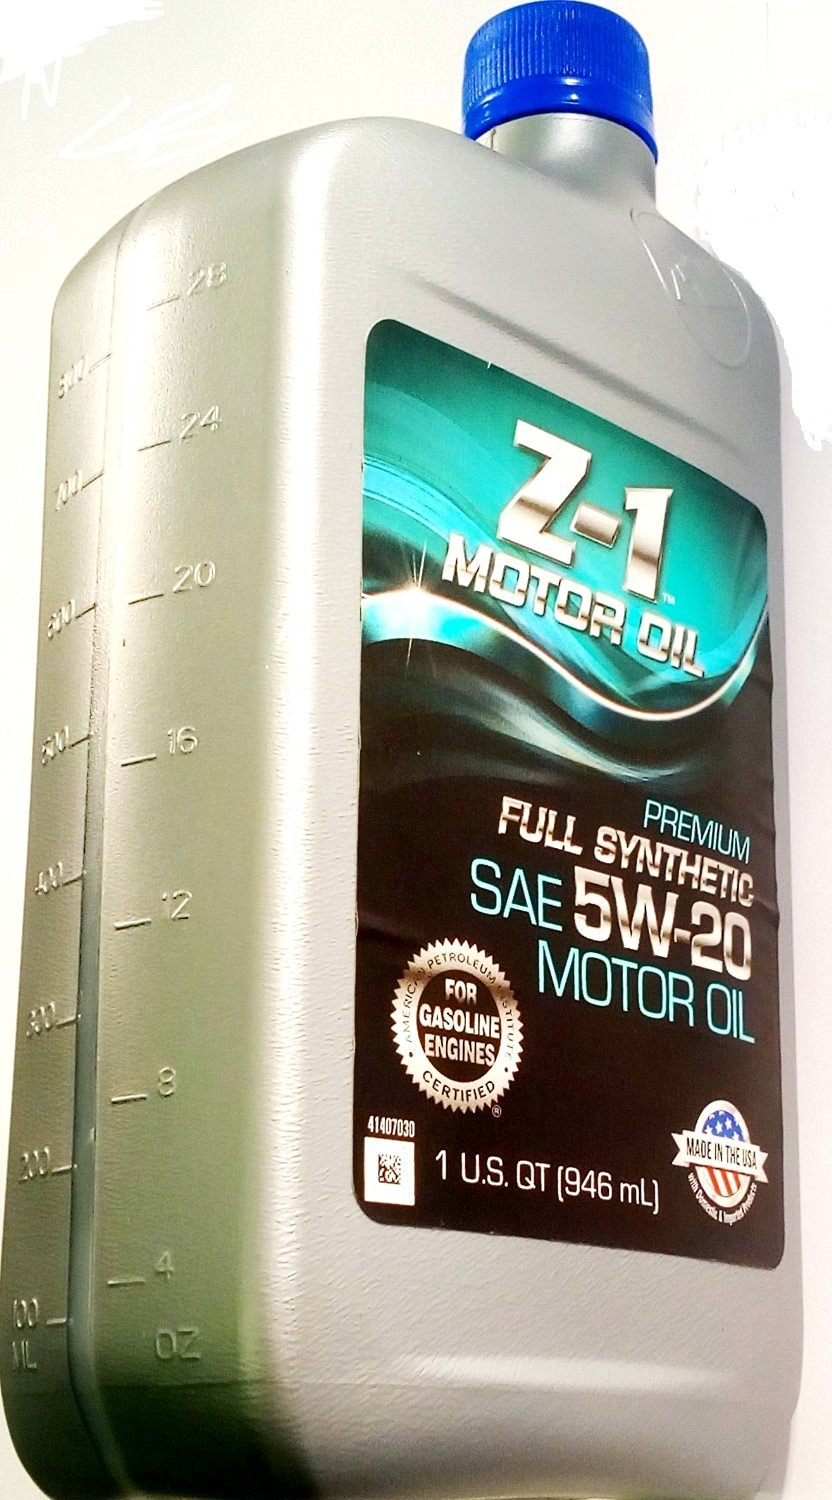 Genuine Z-1 Certified - Premium Full Synthetic Gasoline Engine Oil - SAE 5W-20 - Advanced Wear Protection- (1 U.S. Quart/946 mL) - Bottle - [CASE OF 12]